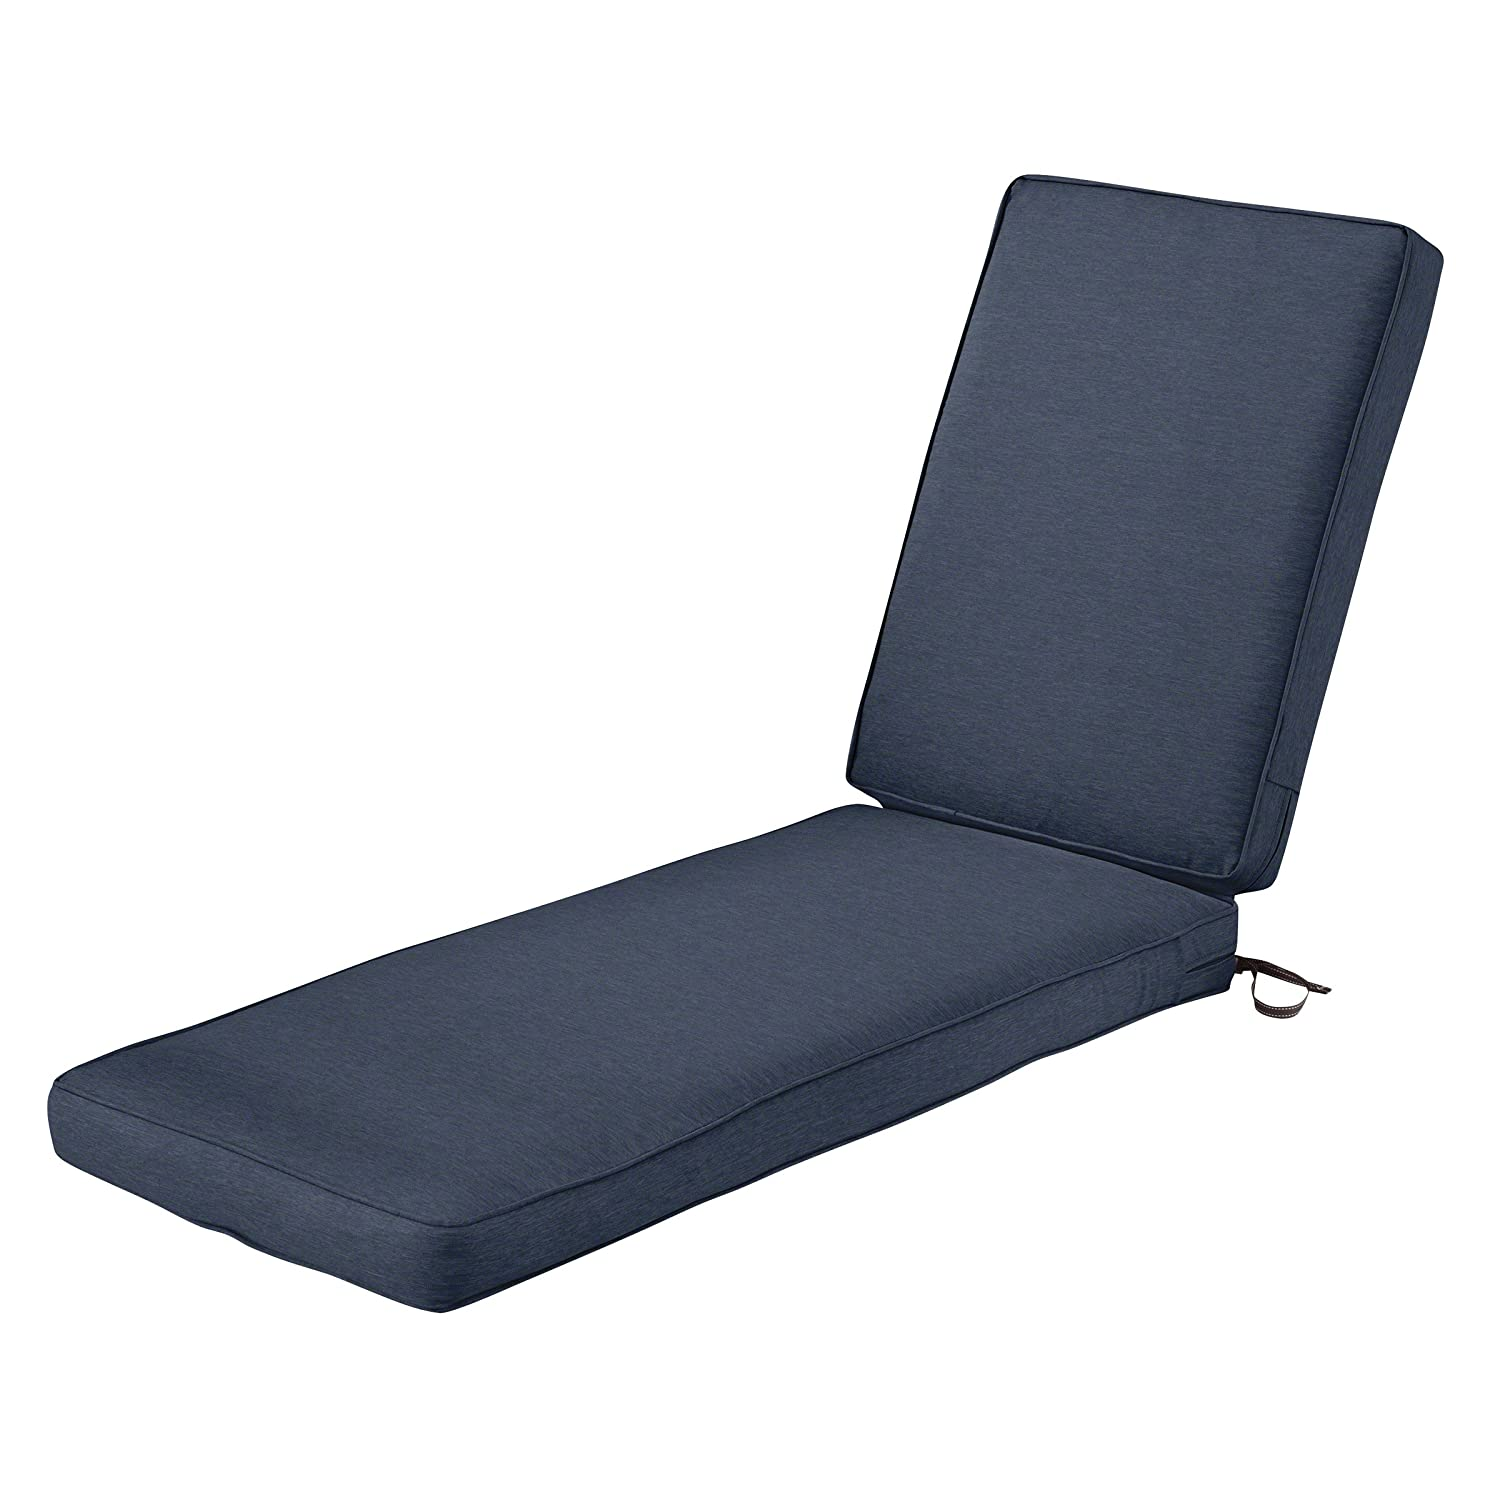 "Classic Accessories Montlake Chaise Cushion Foam & Slip Cover, Heather Indigo, 72x21x3"" Thick"